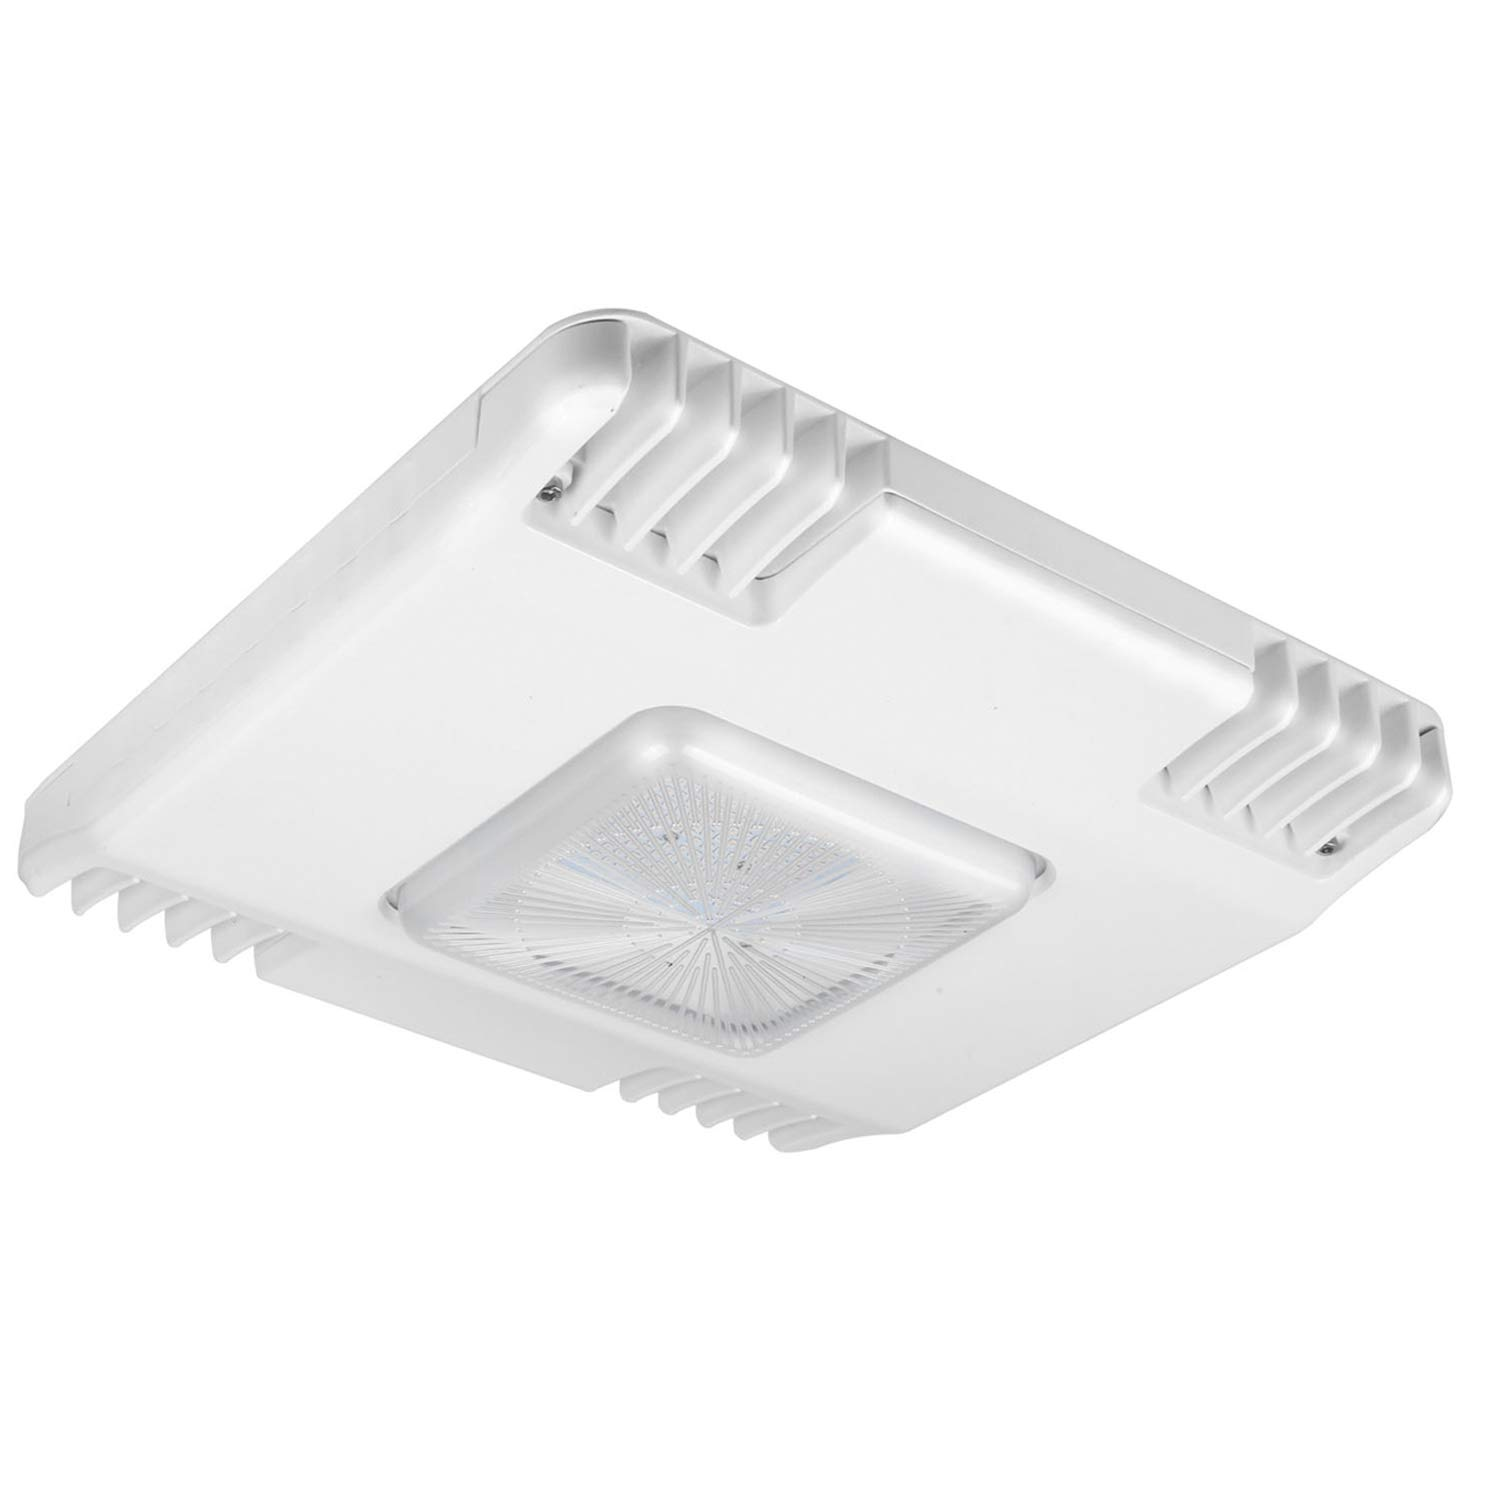 Hykolity LED Gas Station Canopy Light Surface Mount Internal Driver 150W Outdoor Rated Commerical Weatherproof High Bay Carport Driveway Ceiling Light ...  sc 1 st  Amazon.com & Hykolity LED Gas Station Canopy Light Surface Mount Internal Driver ...